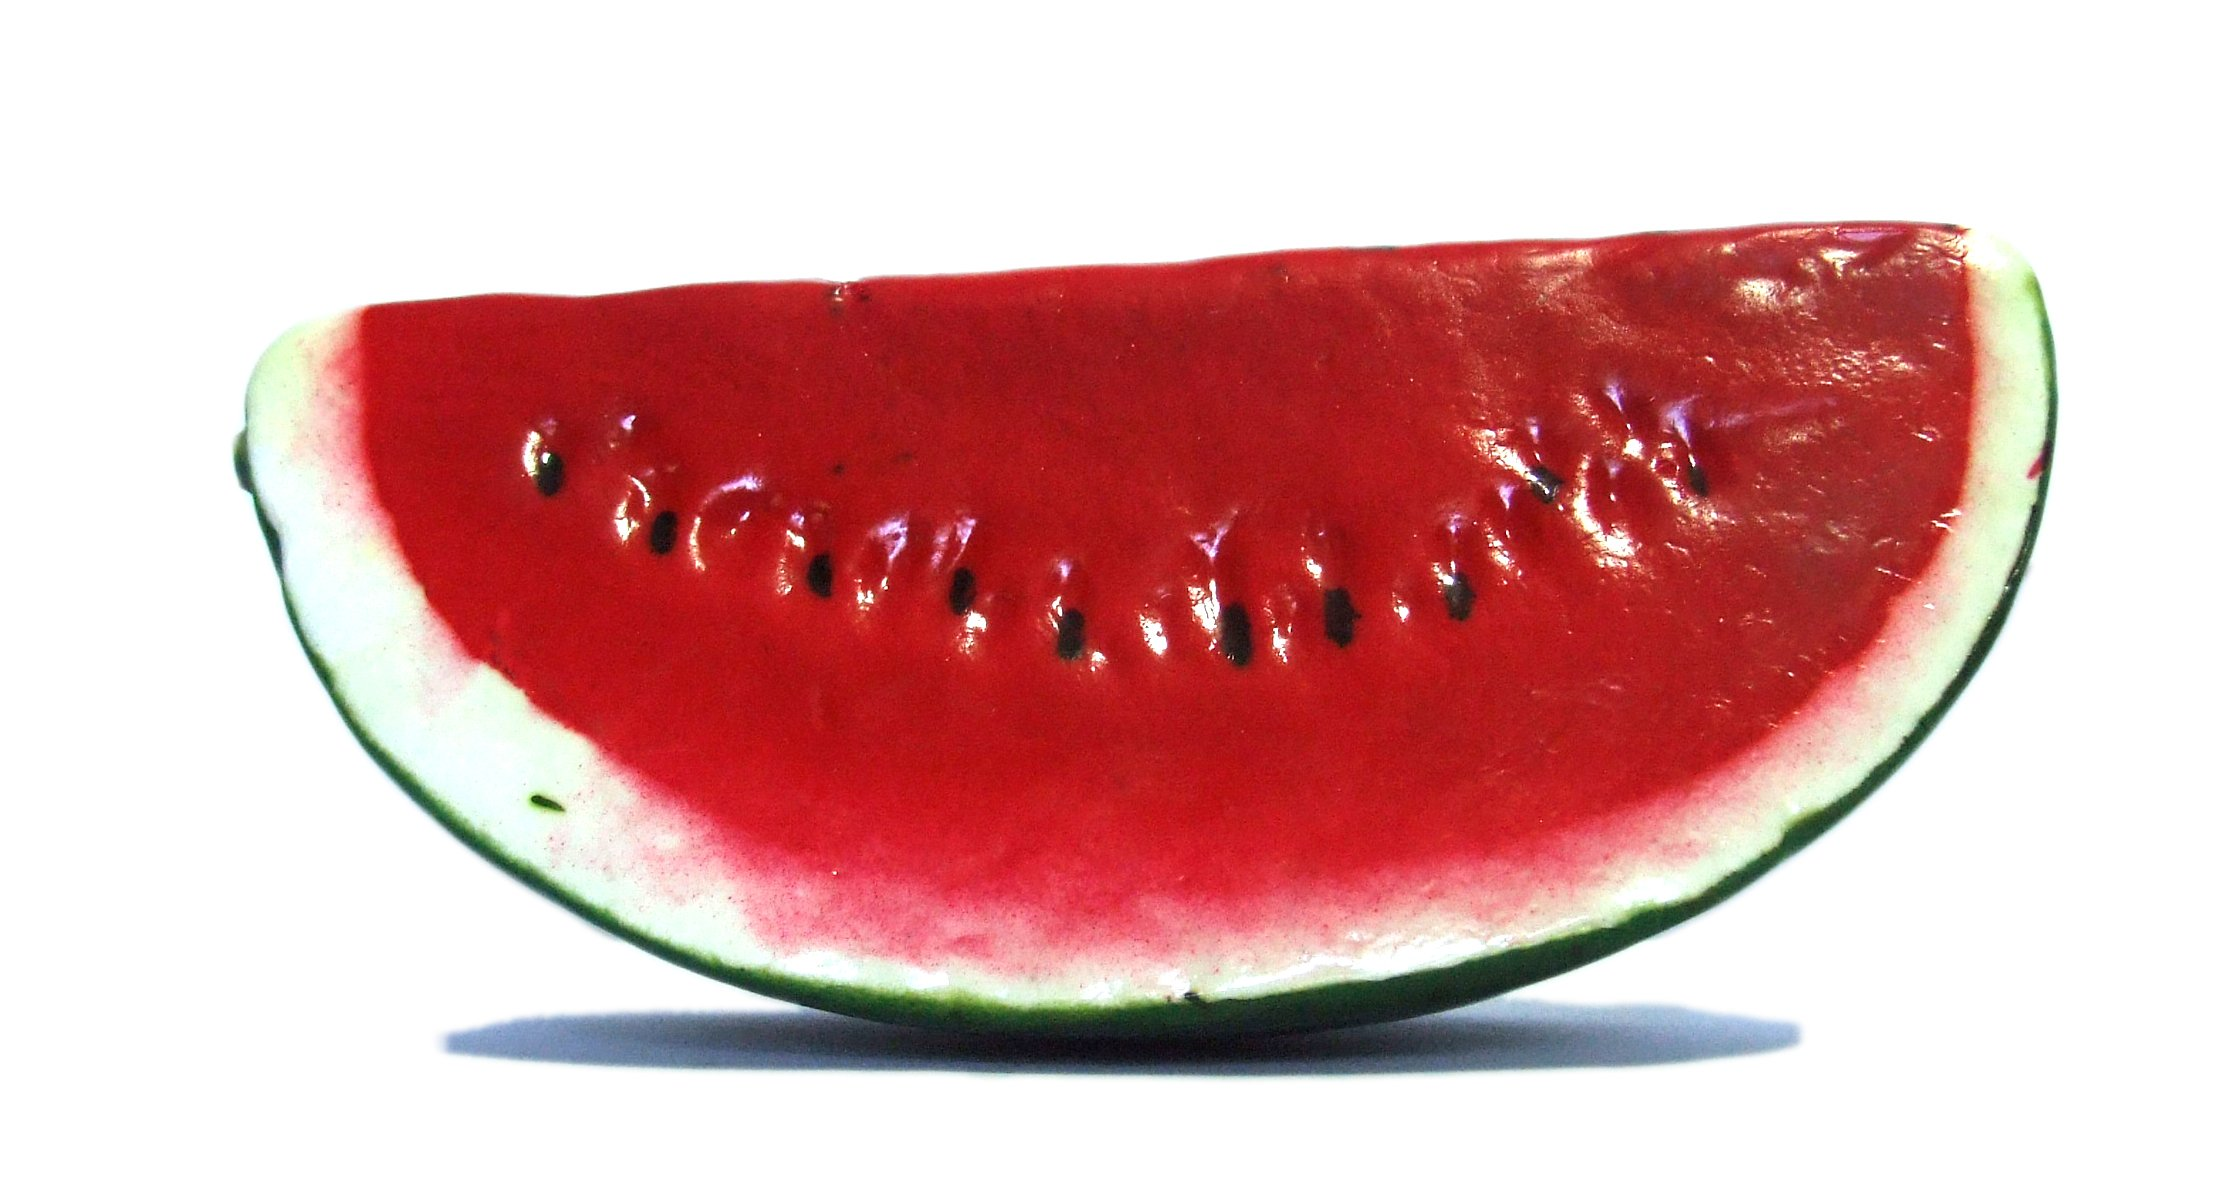 6pc-Artificial-Watermelon-Slice-Plastic-Green-Red-Watermelons-Slices-Fruit-Six-Pieces